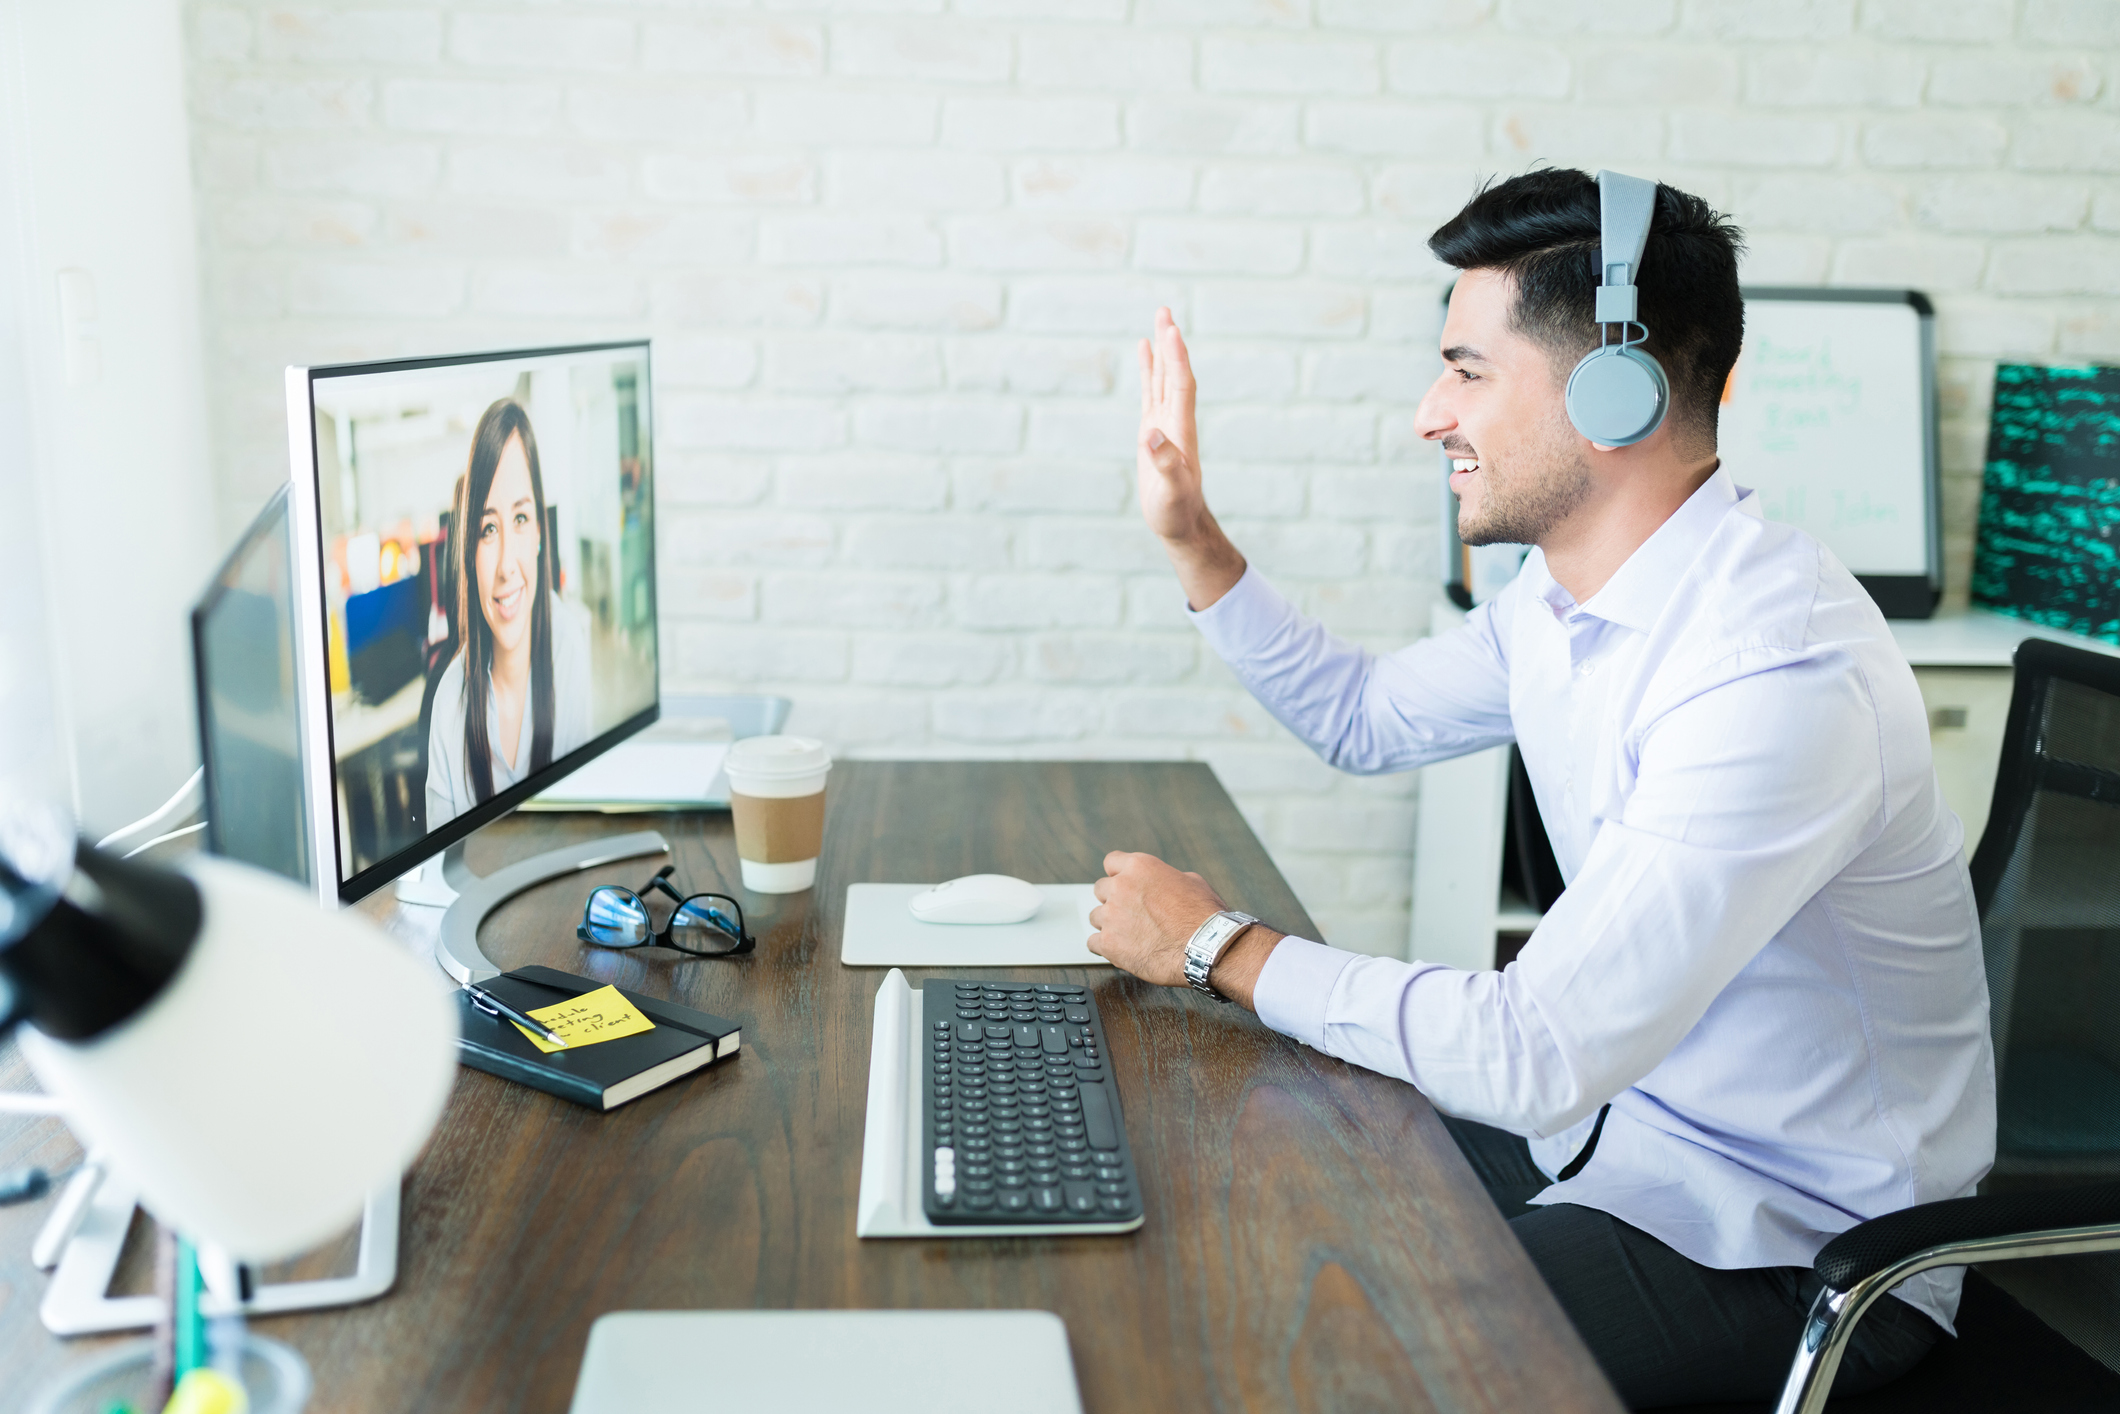 people meeting over videoconferencing